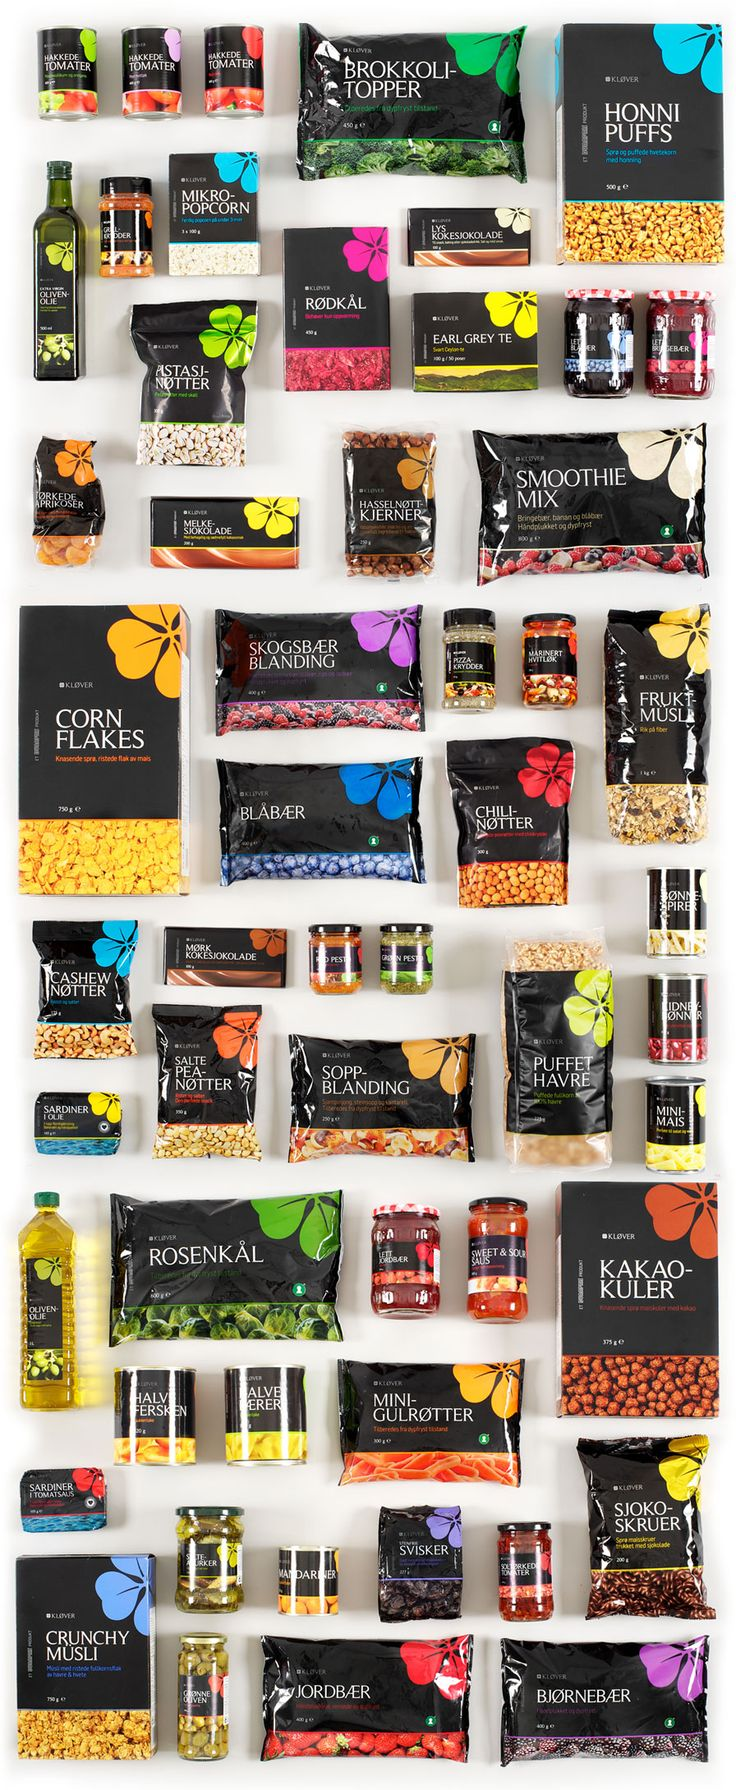 Even though they offer a variety of goods, Bunnpris's branding and packaging carries throughout all goods creating a real sense of consistency. #Branding #Packaging